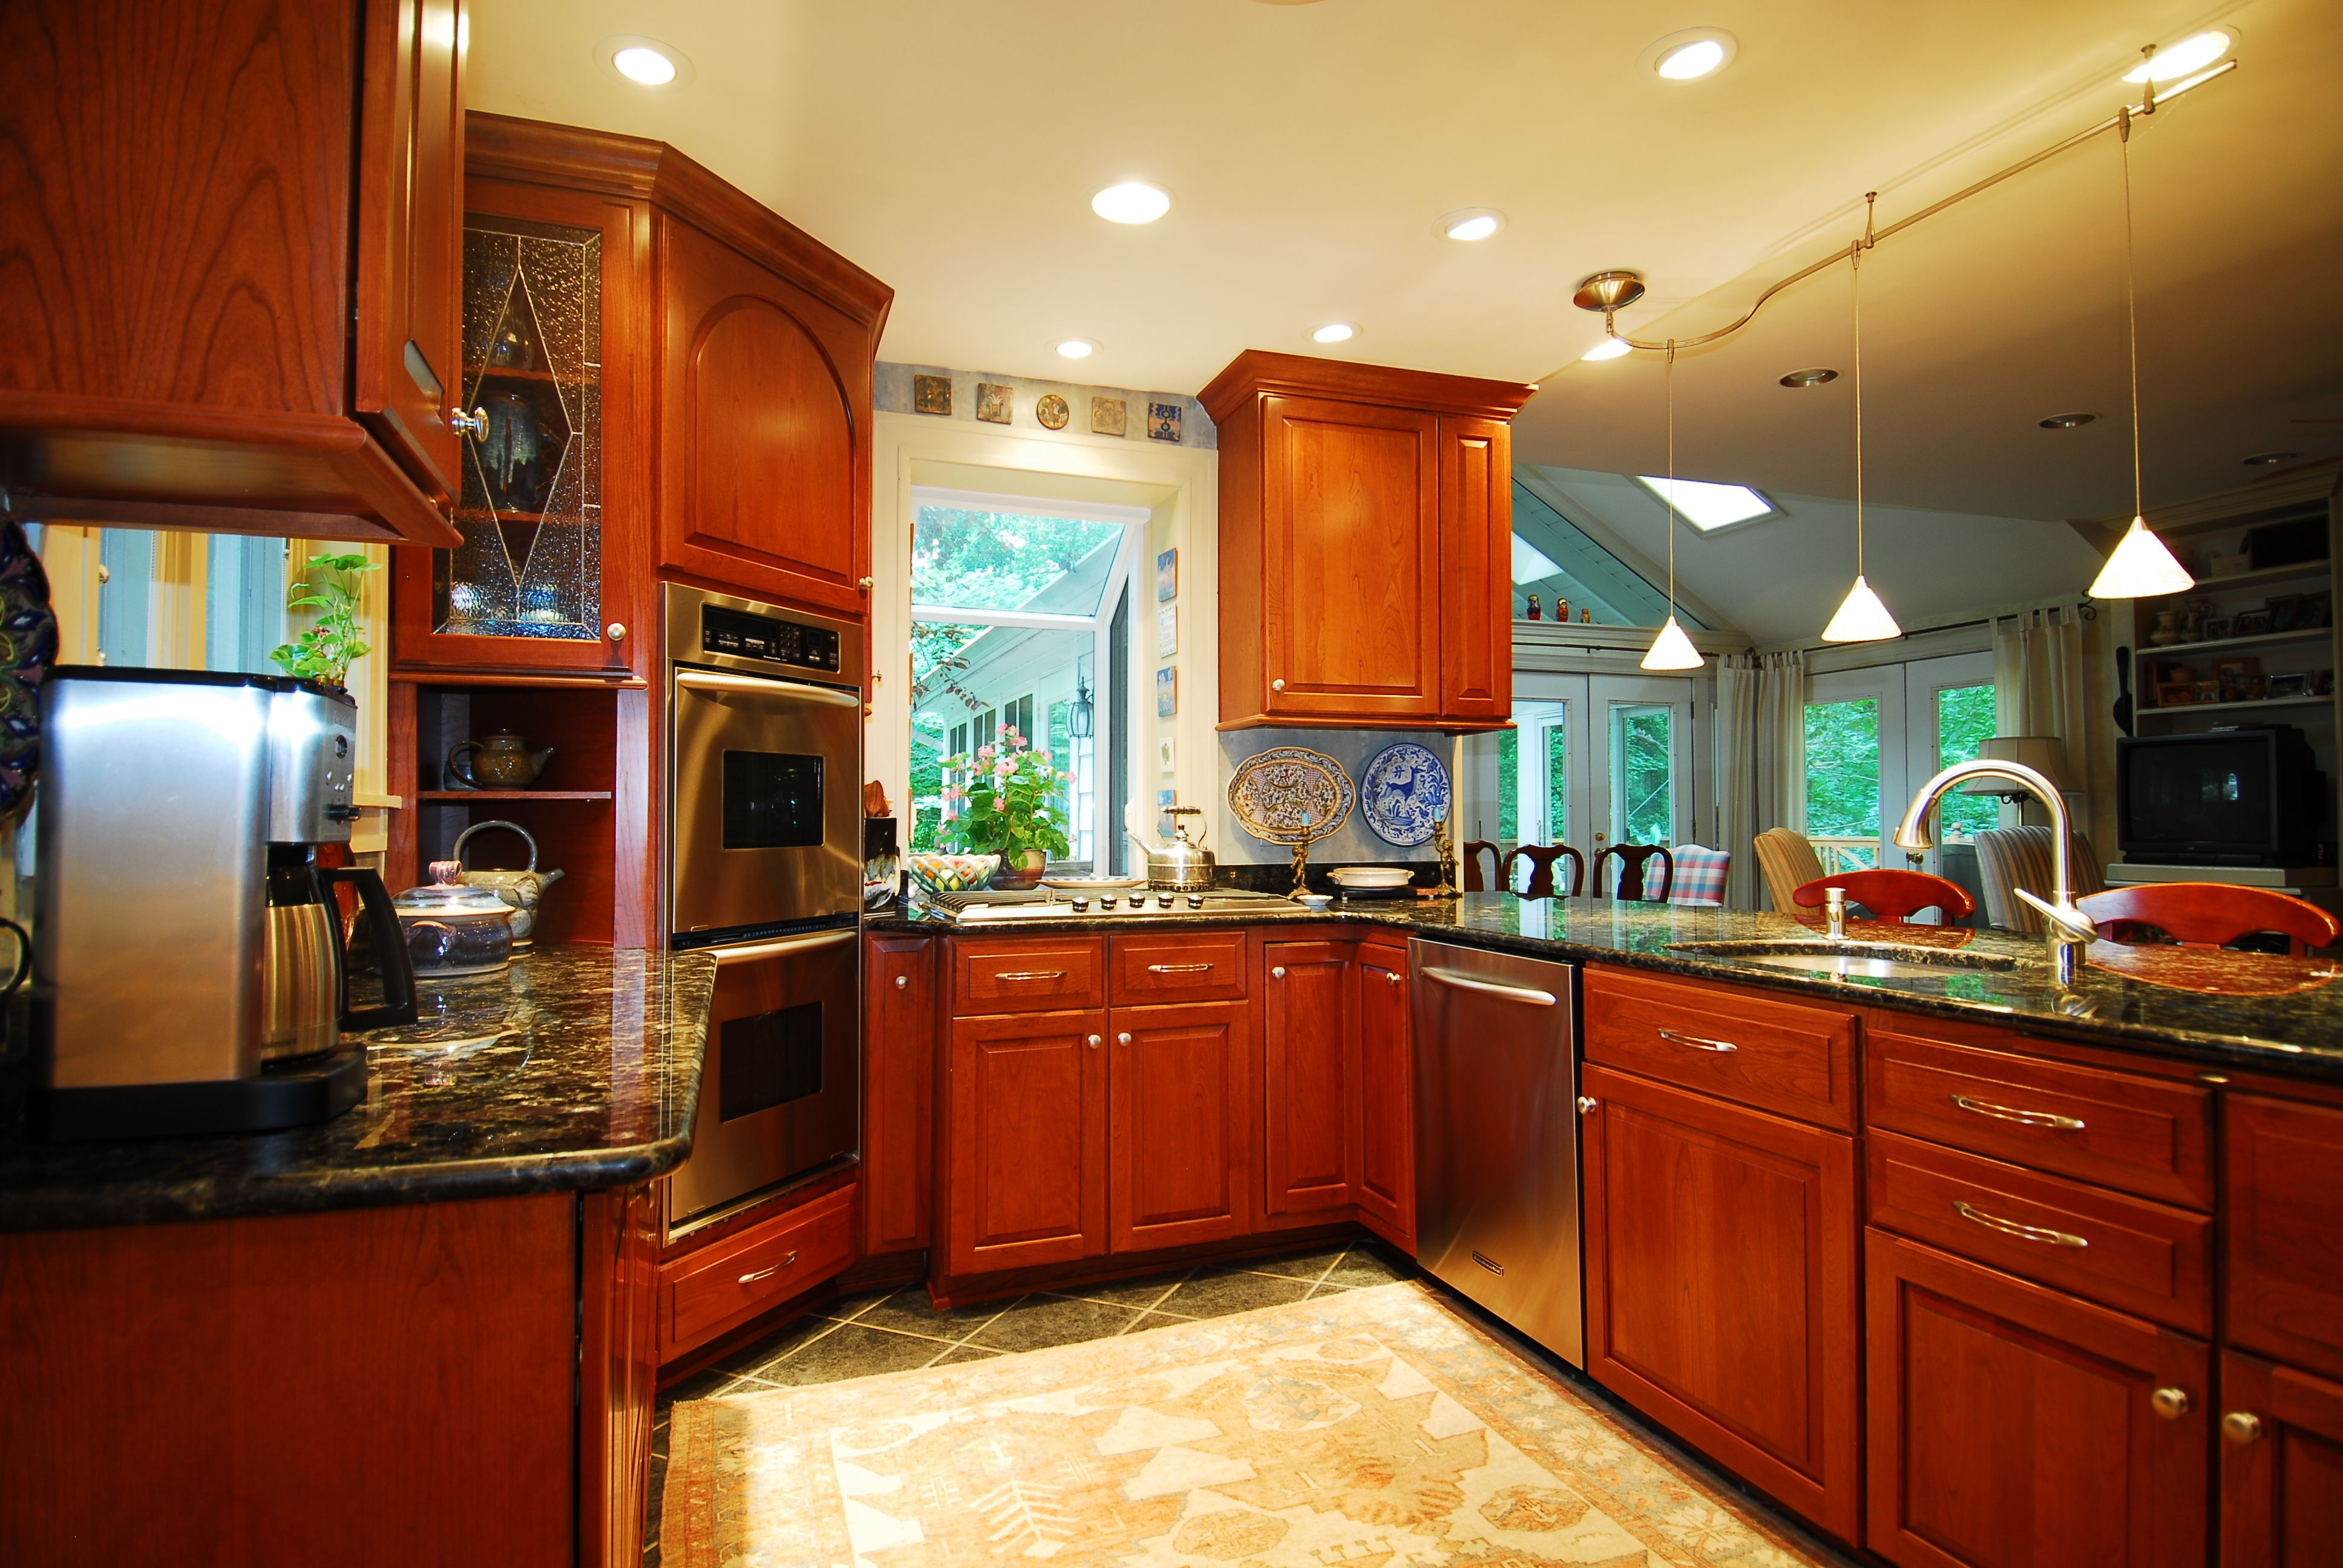 kitchen cabinet refacing gallery refacing kitchen cabinets kitchen cabinets custom kitchen on kitchen cabinets refacing id=67547